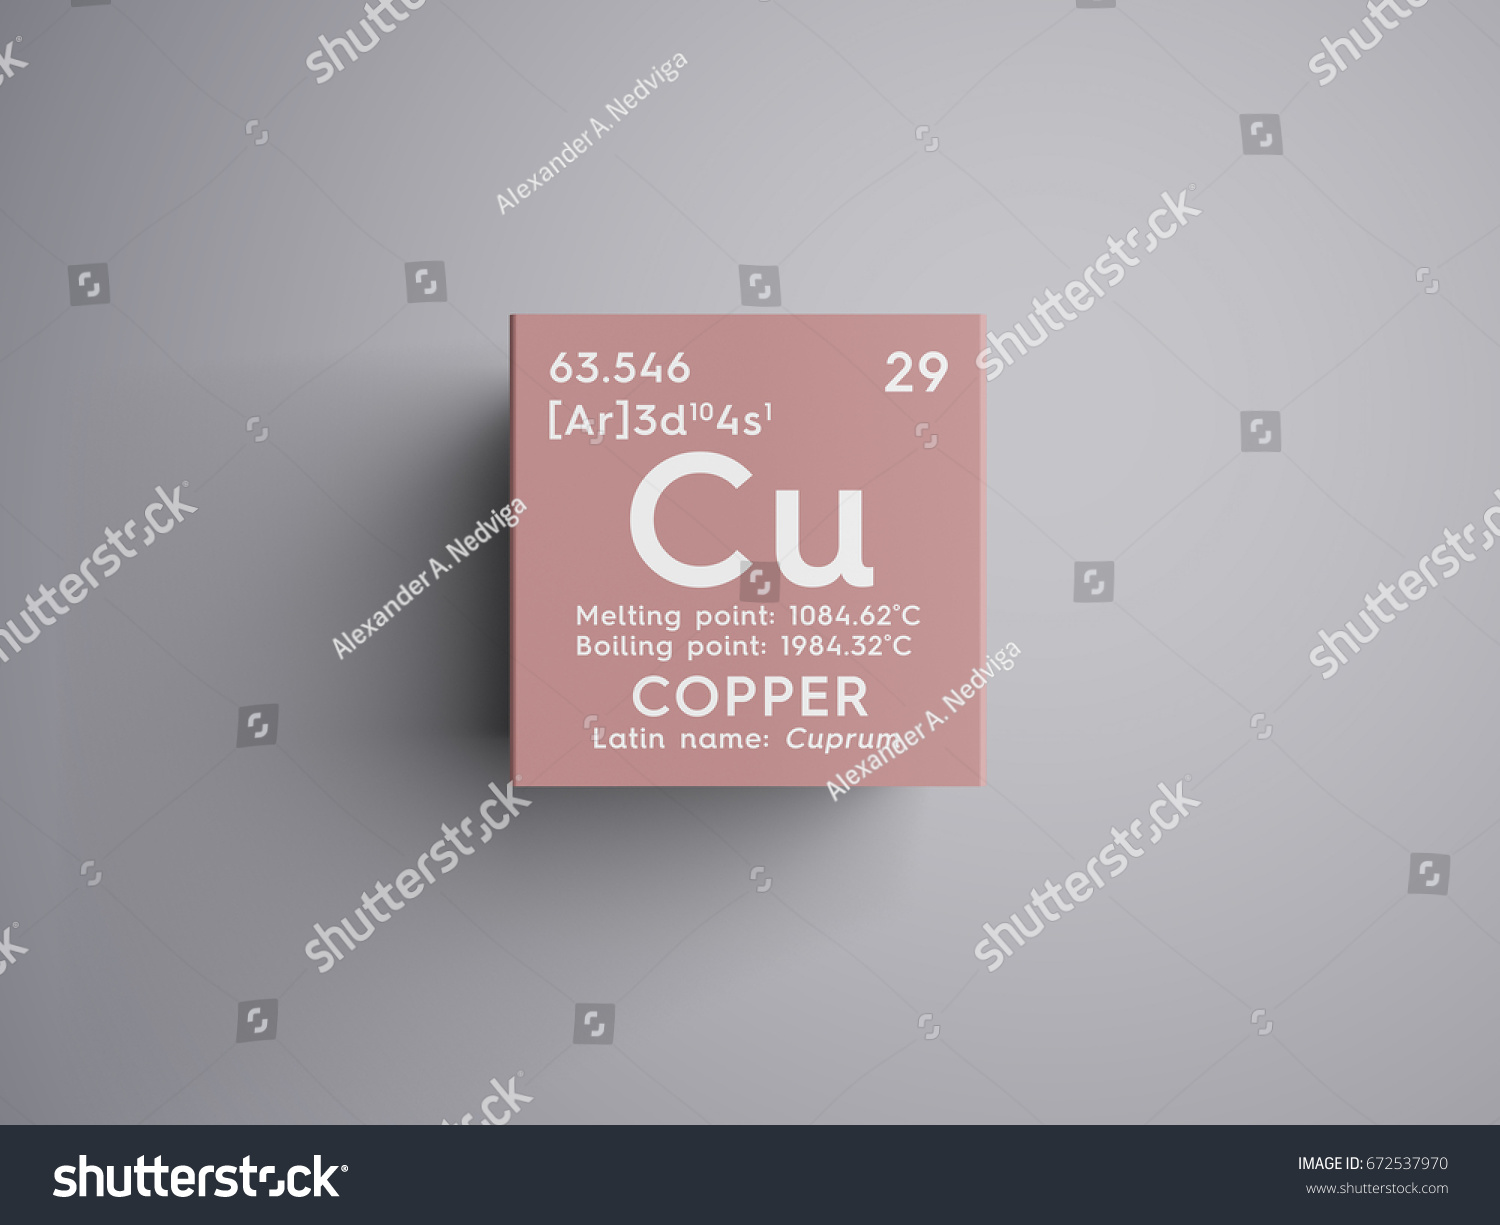 Element cu periodic table choice image periodic table images copper periodic table of elements images periodic table images copper periodic table of elements choice image gamestrikefo Gallery